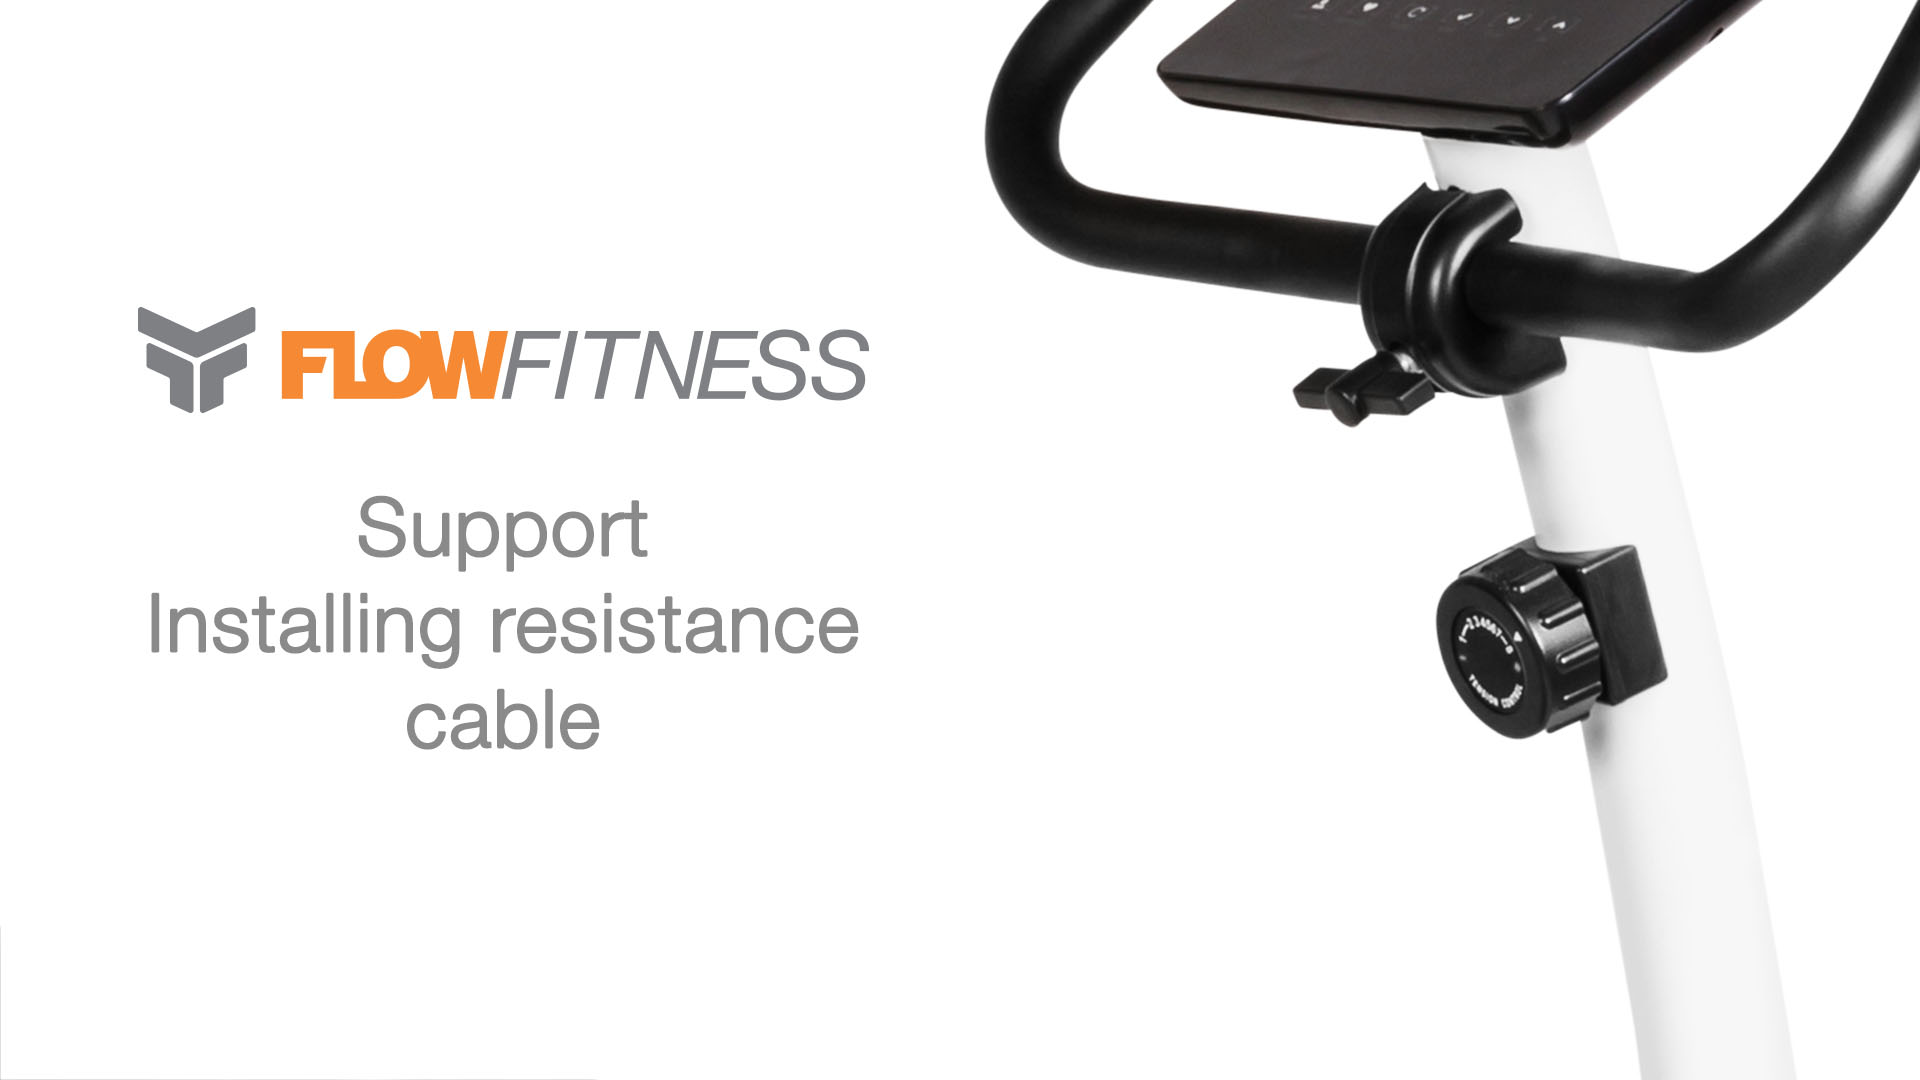 Installing resistance cable